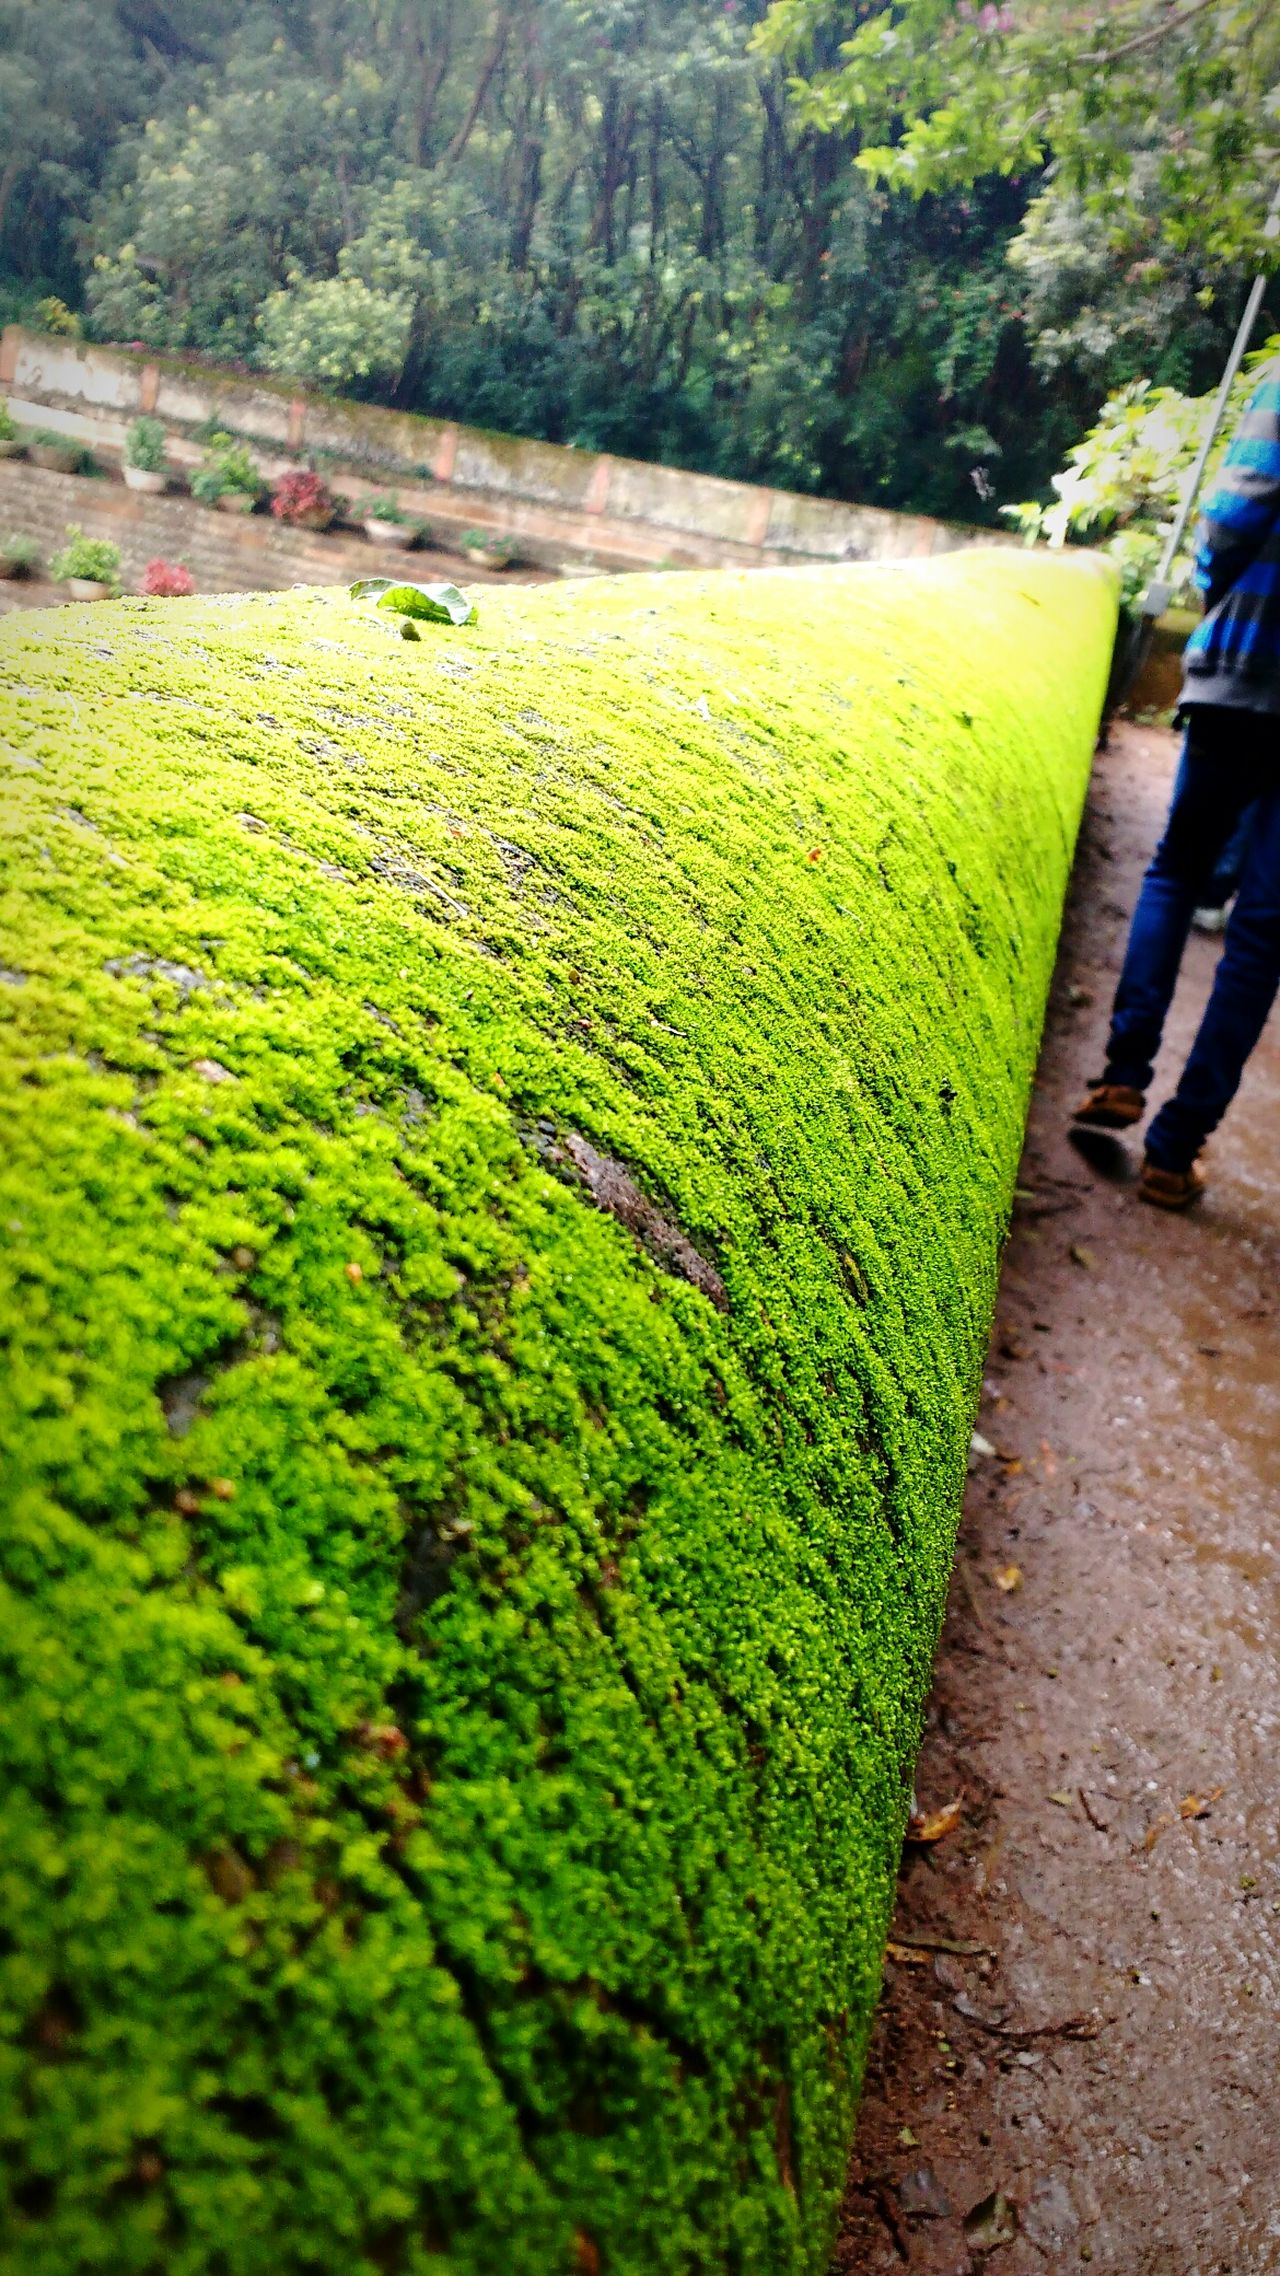 The Green embraces the Ground. Nature adds Beauty! Green worlds Greenlovesground Green Color Pathway Perspectives Diminishing Perspective Walkway Nature Formal Garden Tranquility Greenworld Green Lovegreen Nandihills